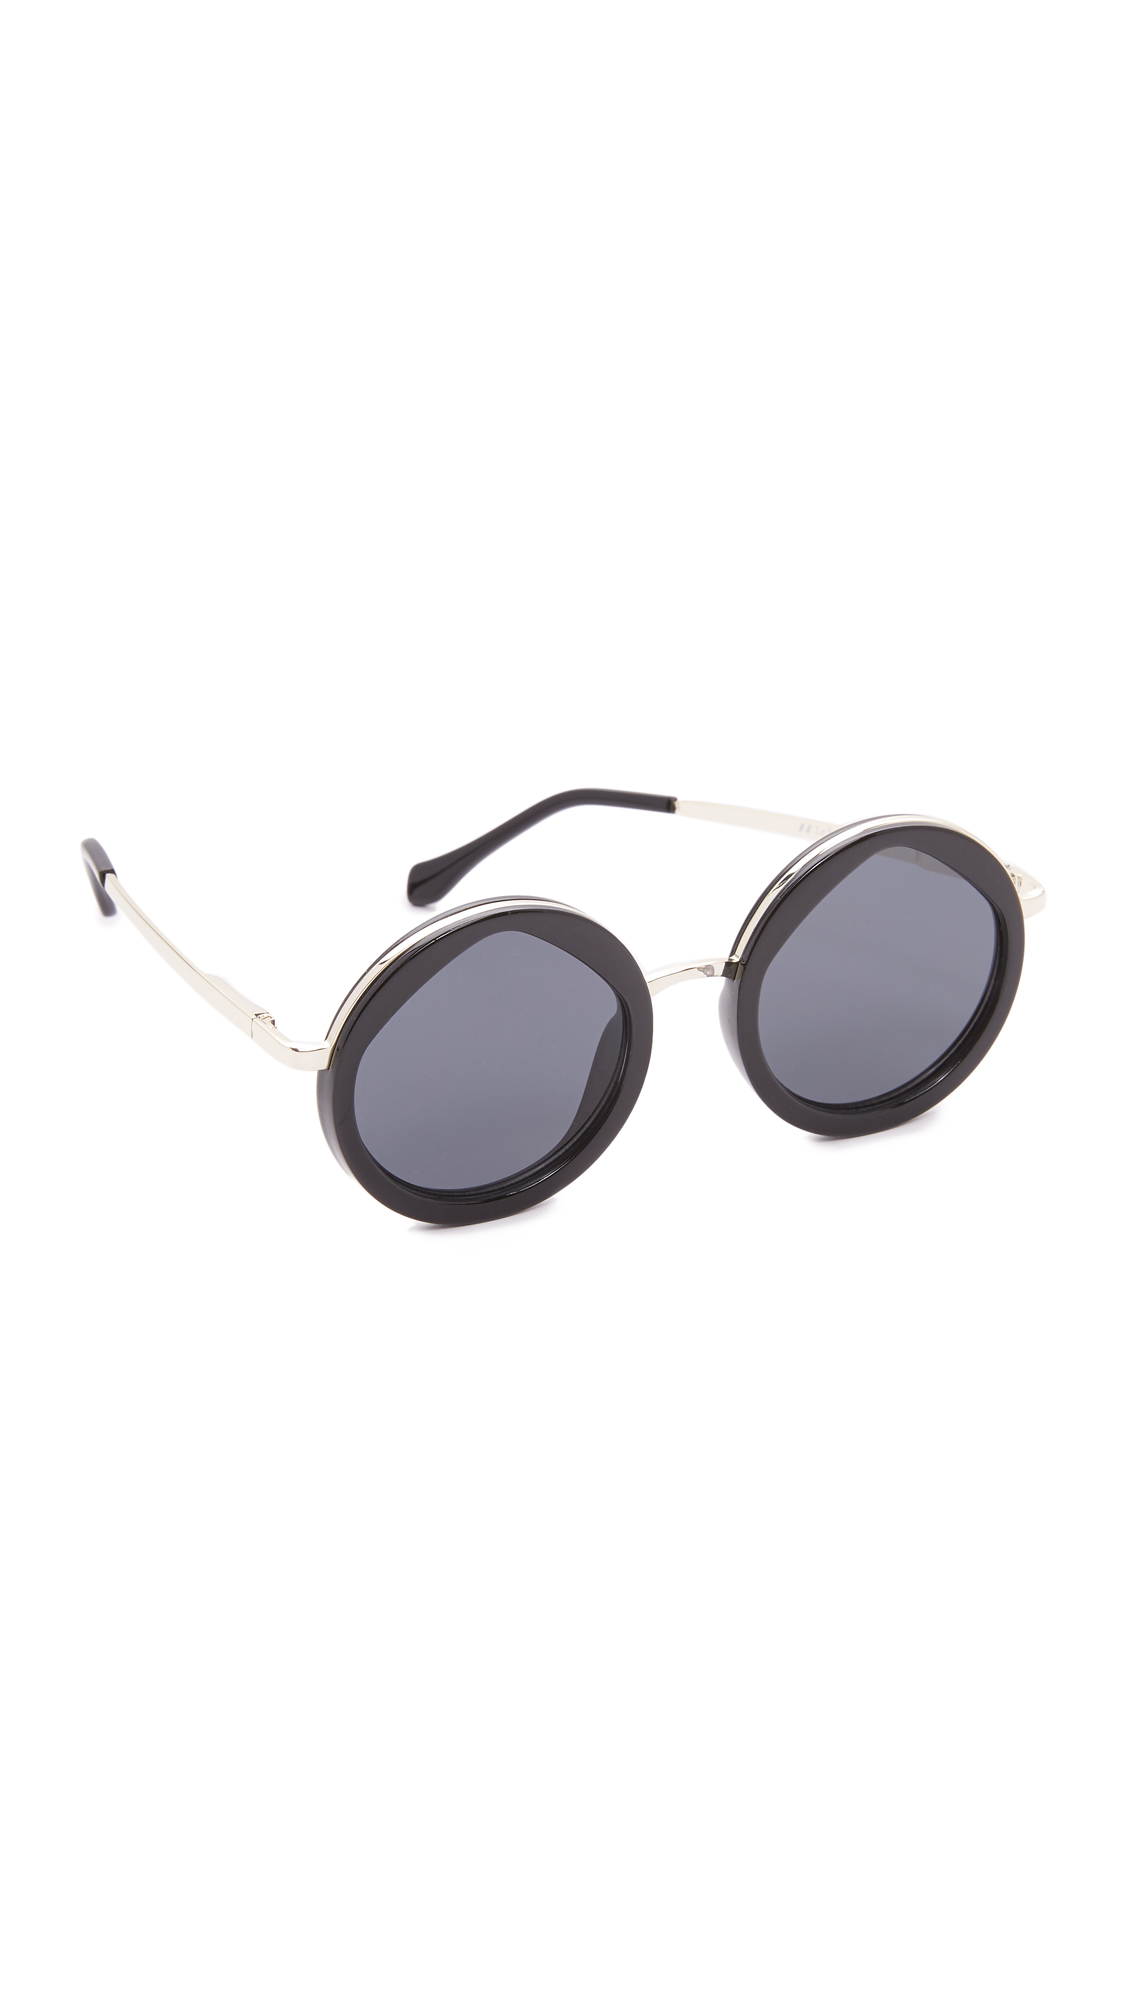 Thick, round frames and angular lenses give these Le Specs sunglasses a bold look. Wire trim. Soft case included. Round frame. Non polarized lenses. Imported, China. Measurements Width: 5.75in / 14.5cm Height: 2.25in / 5.75cm Lens Width: 49mm